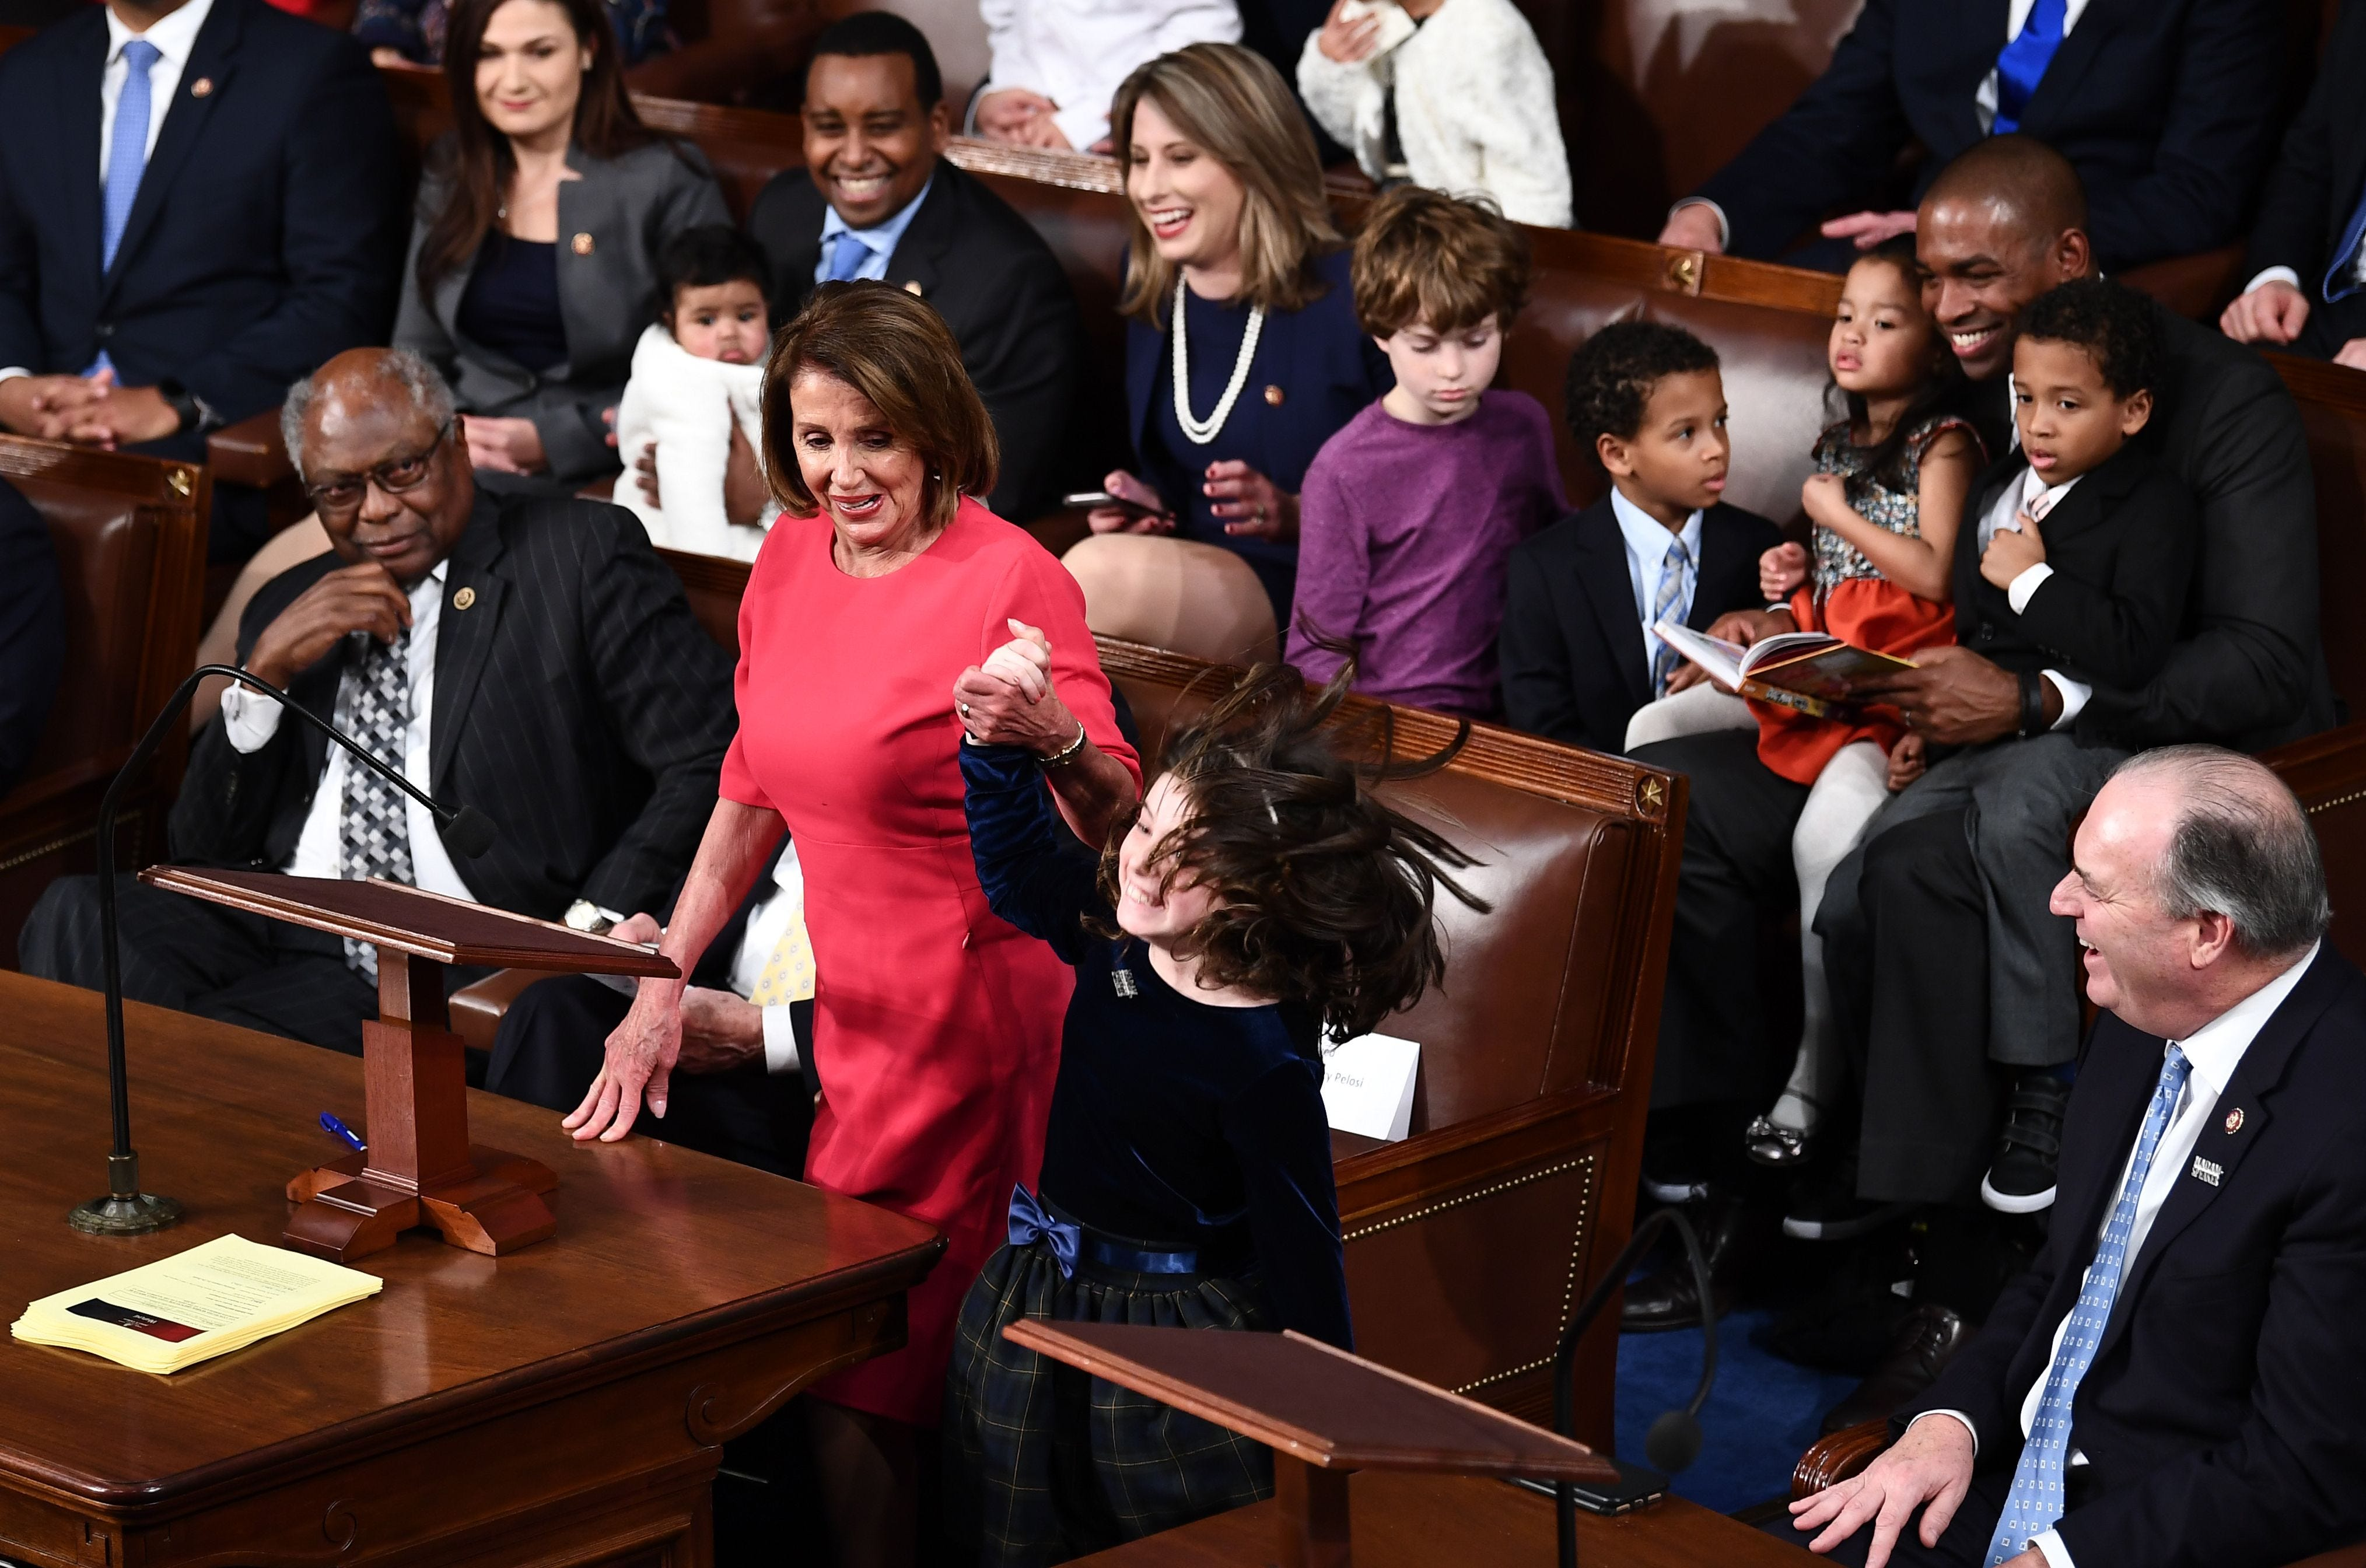 Nancy Pelosi's granddaughter steals the show as House elects her grandmother as speaker